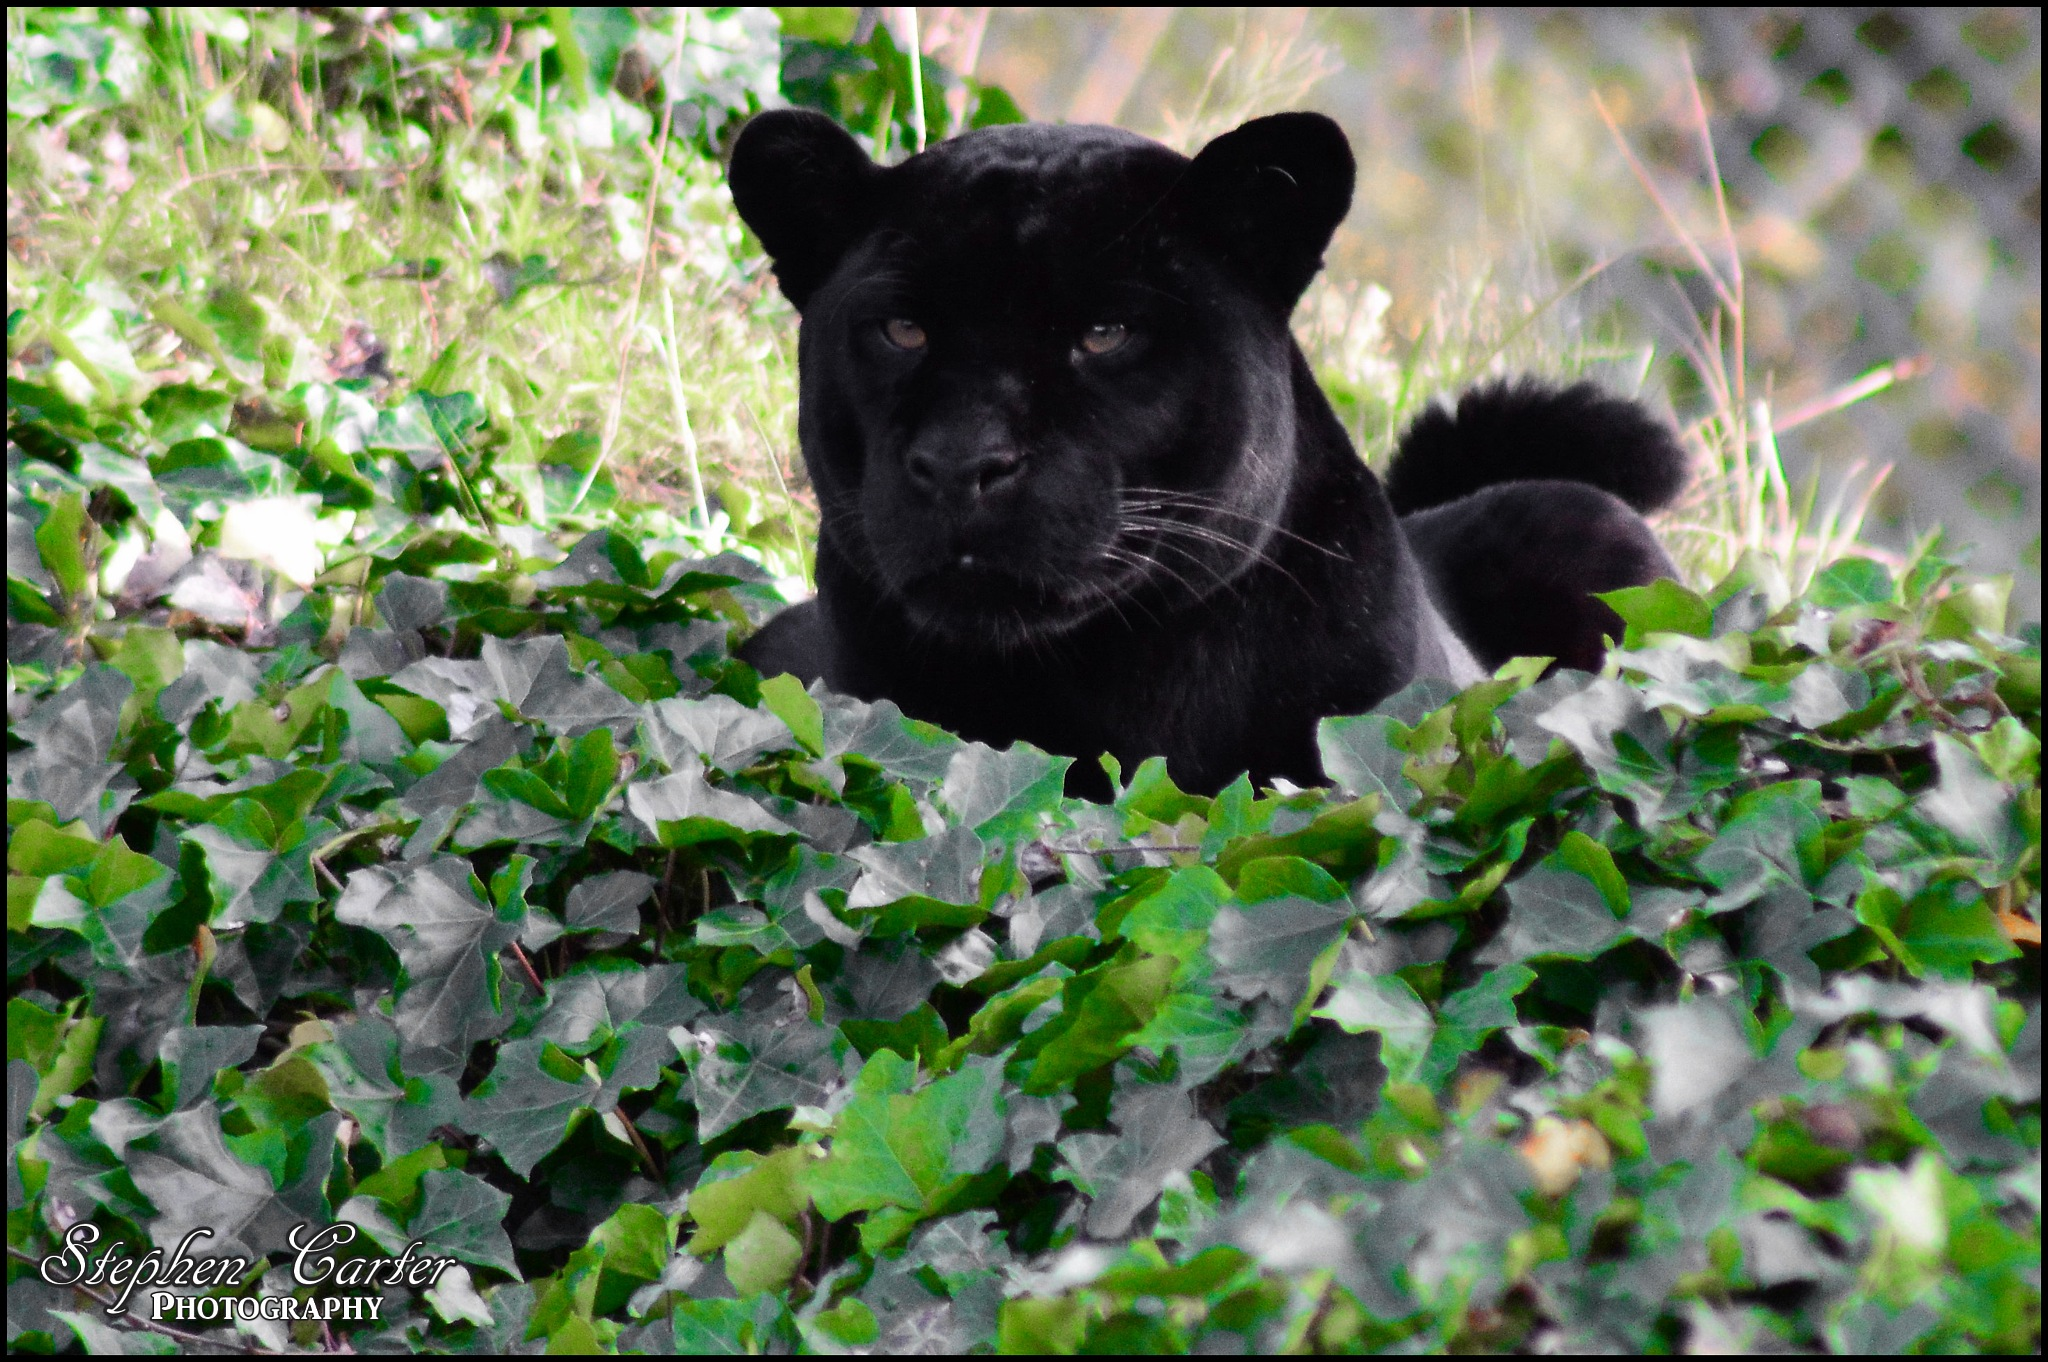 Black Jaguar by Stephen Carter Photography